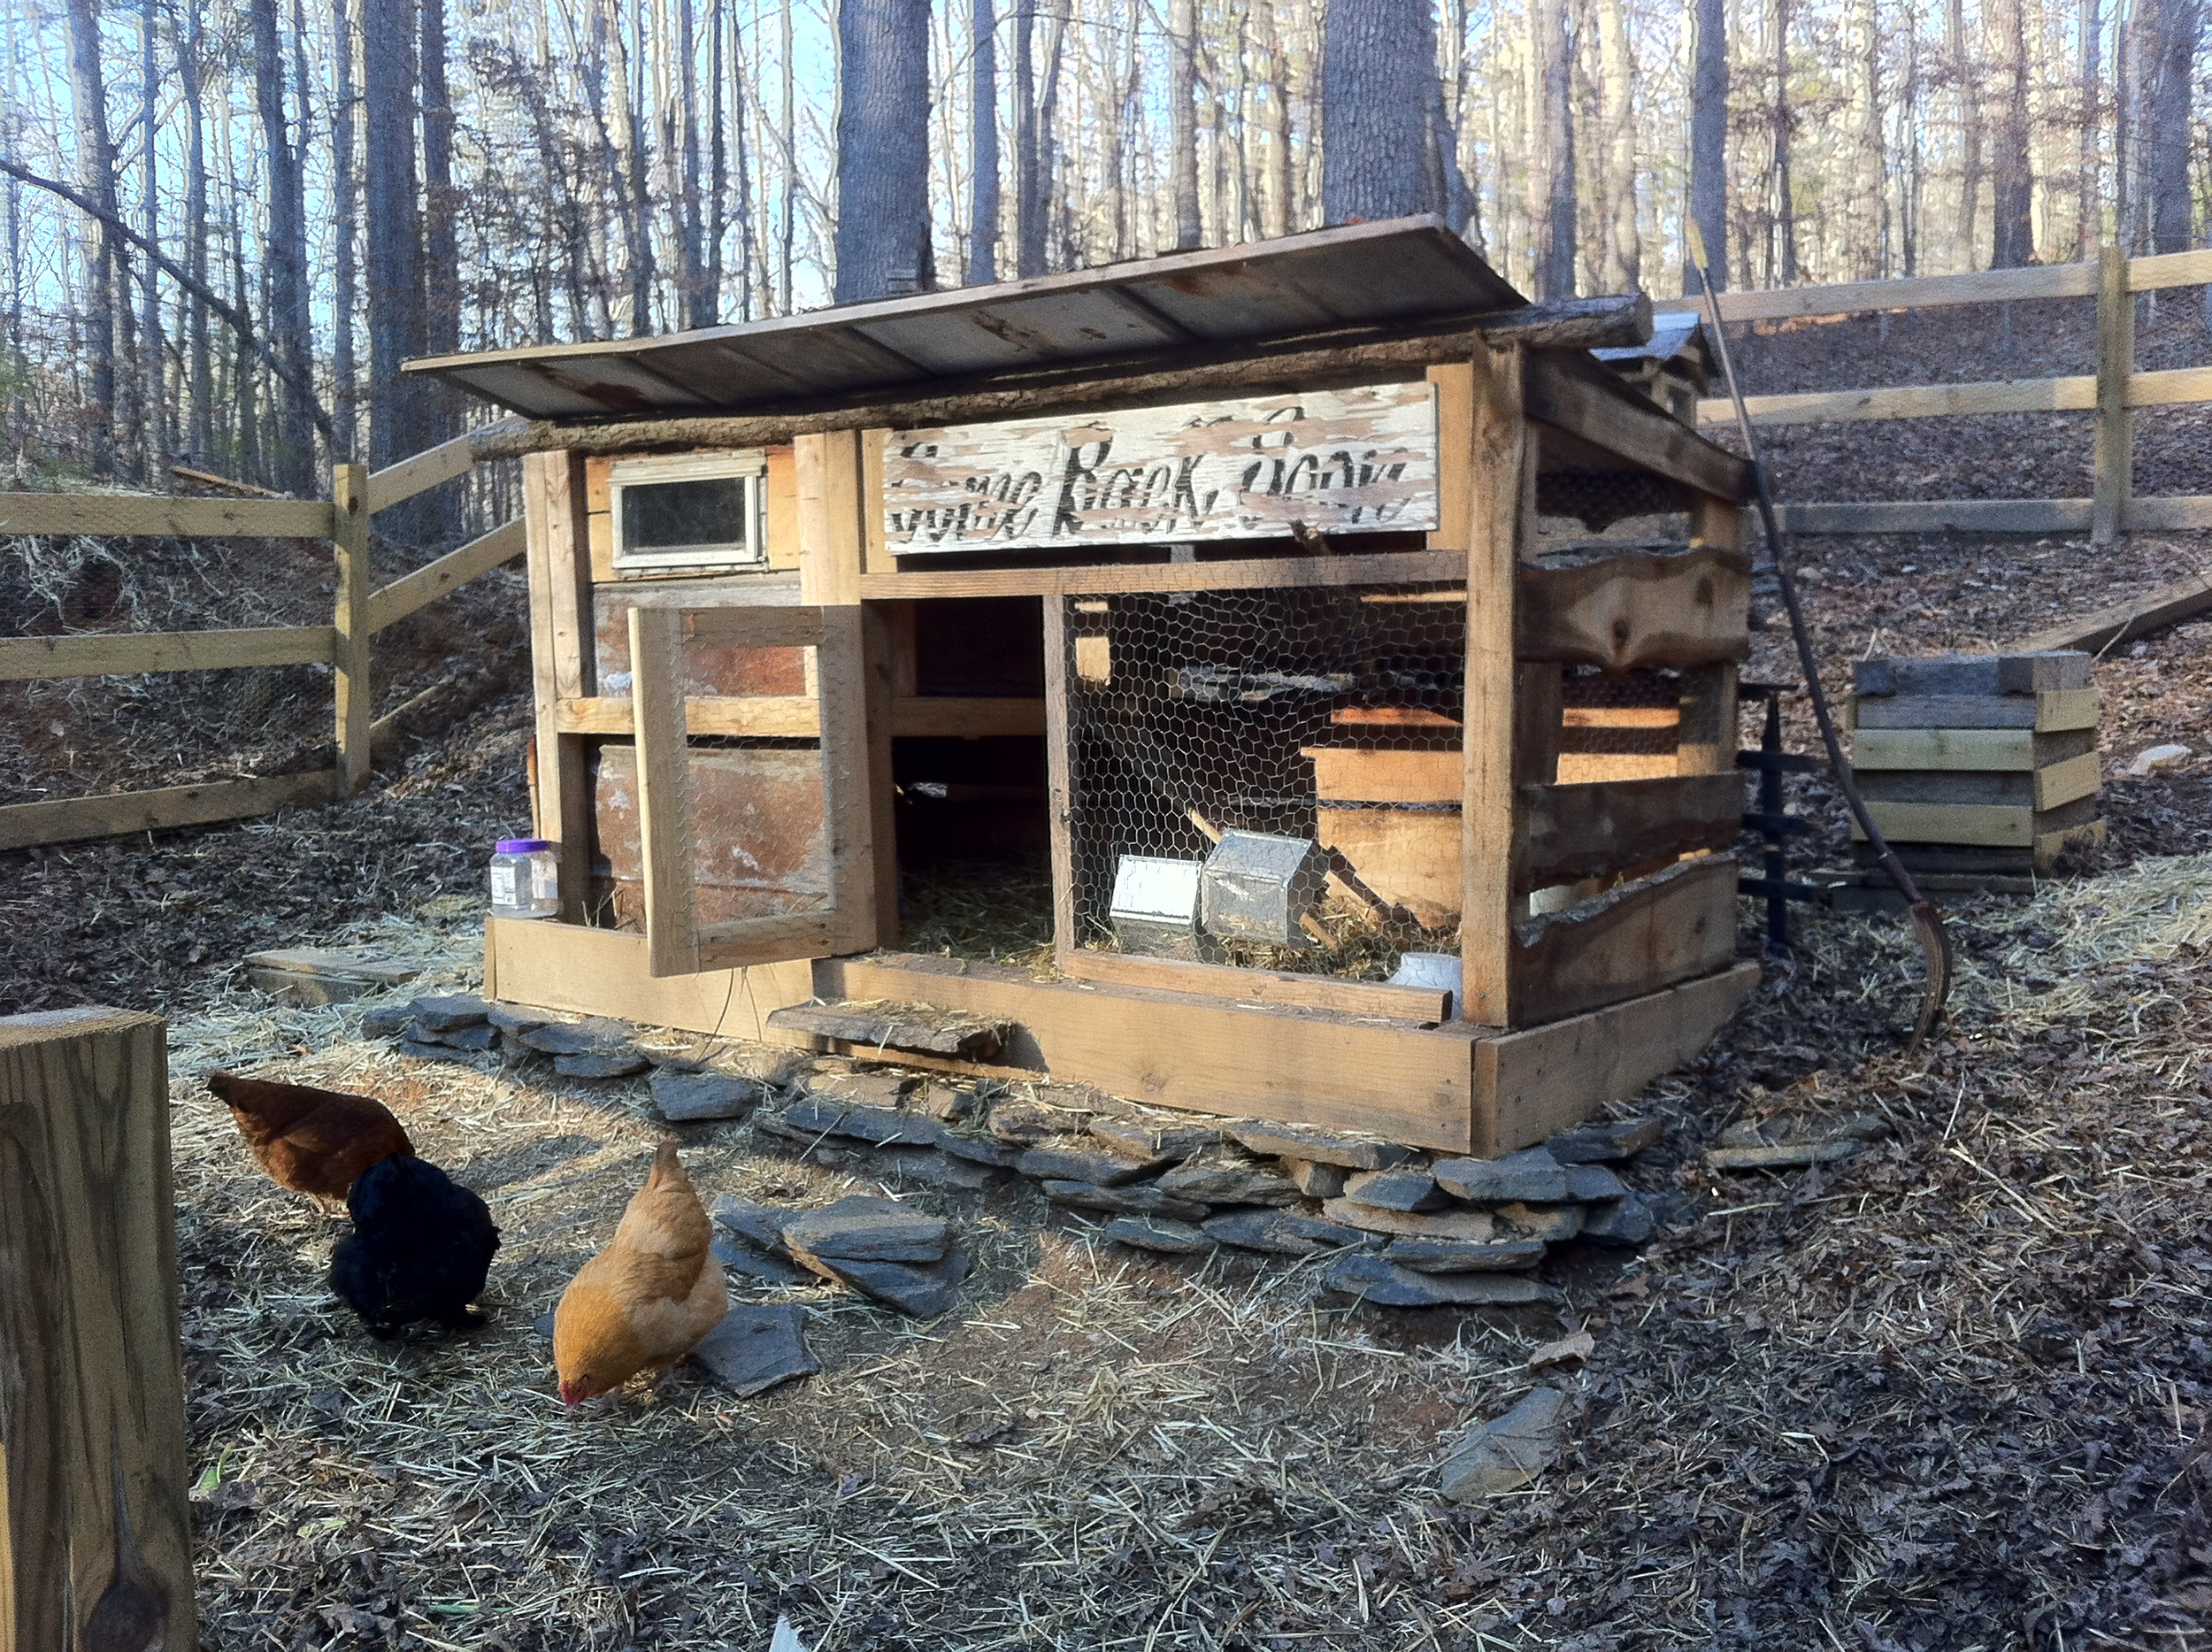 Our girls' home. I made this from some old tin left on our property, some scrap wood I had lying around, remnants from a timber mill, and a decaying sign from a defunct business. Our chickens; Snowy, Laverne, Mildred, and Little Red couldn't be happier!